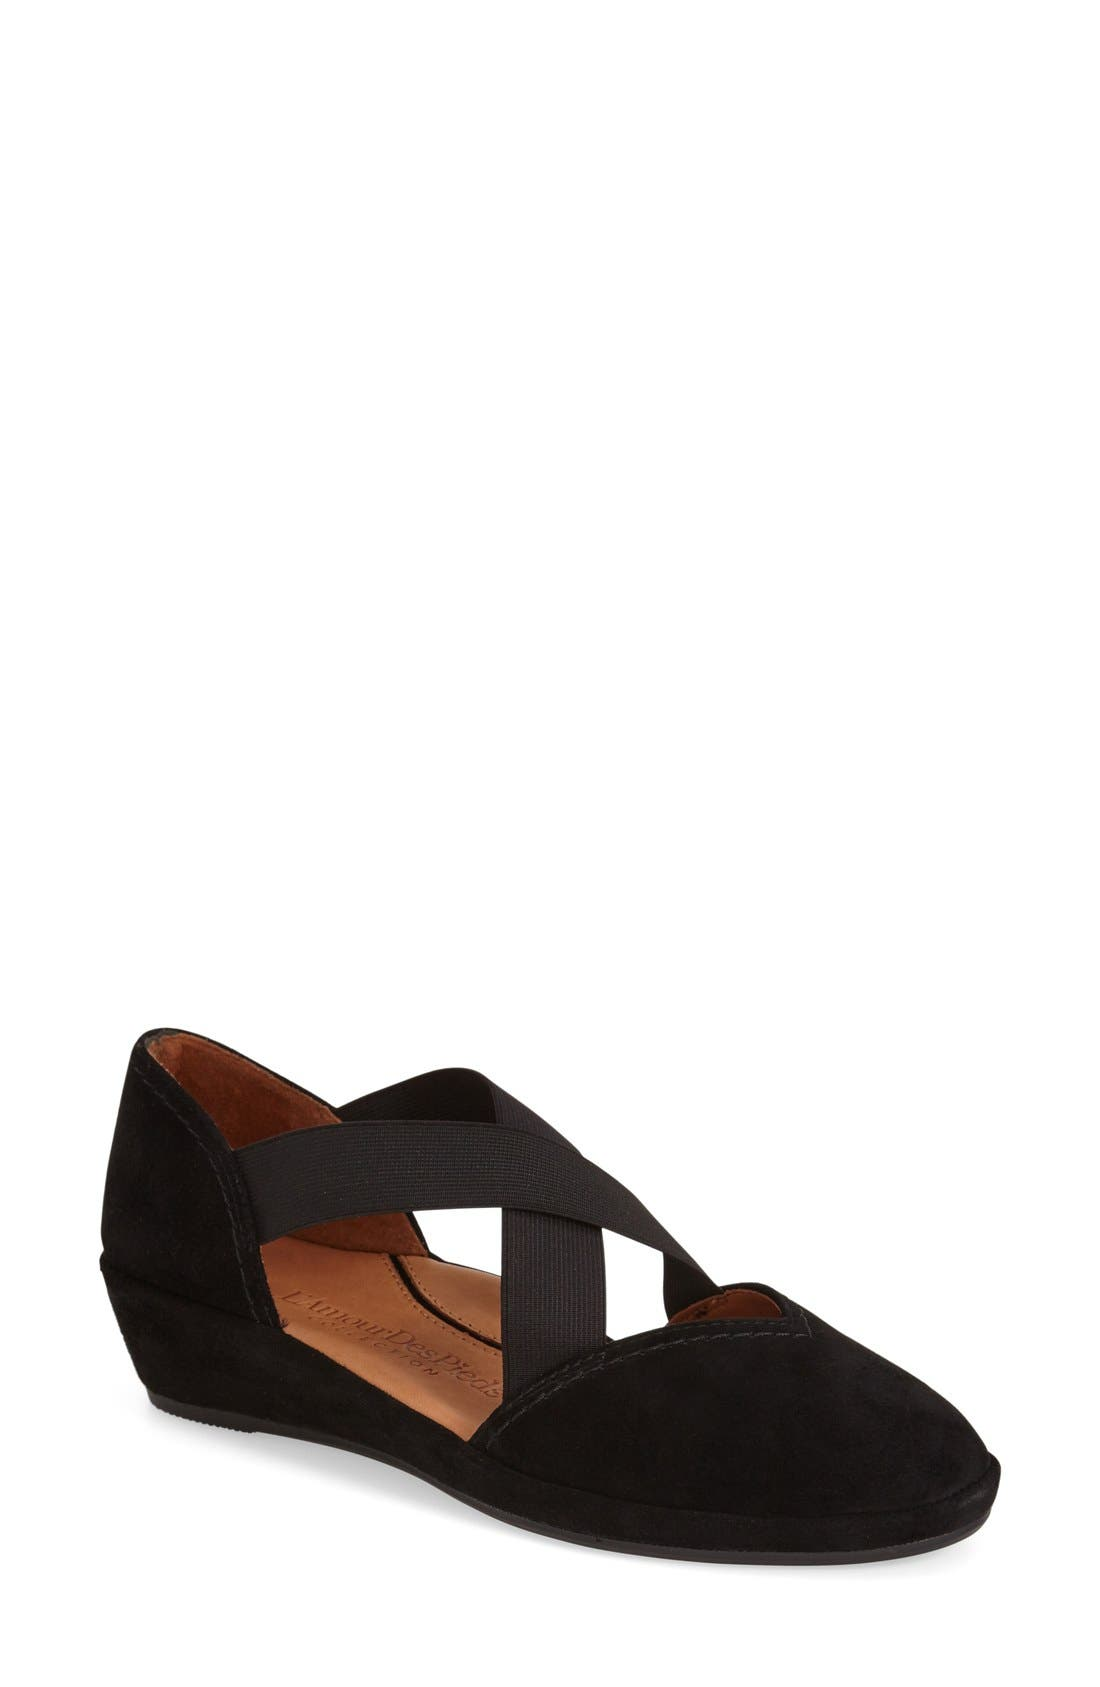 L'AMOUR DES PIEDS 'Bane' Wedge, Main, color, BLACK KIDSUEDE